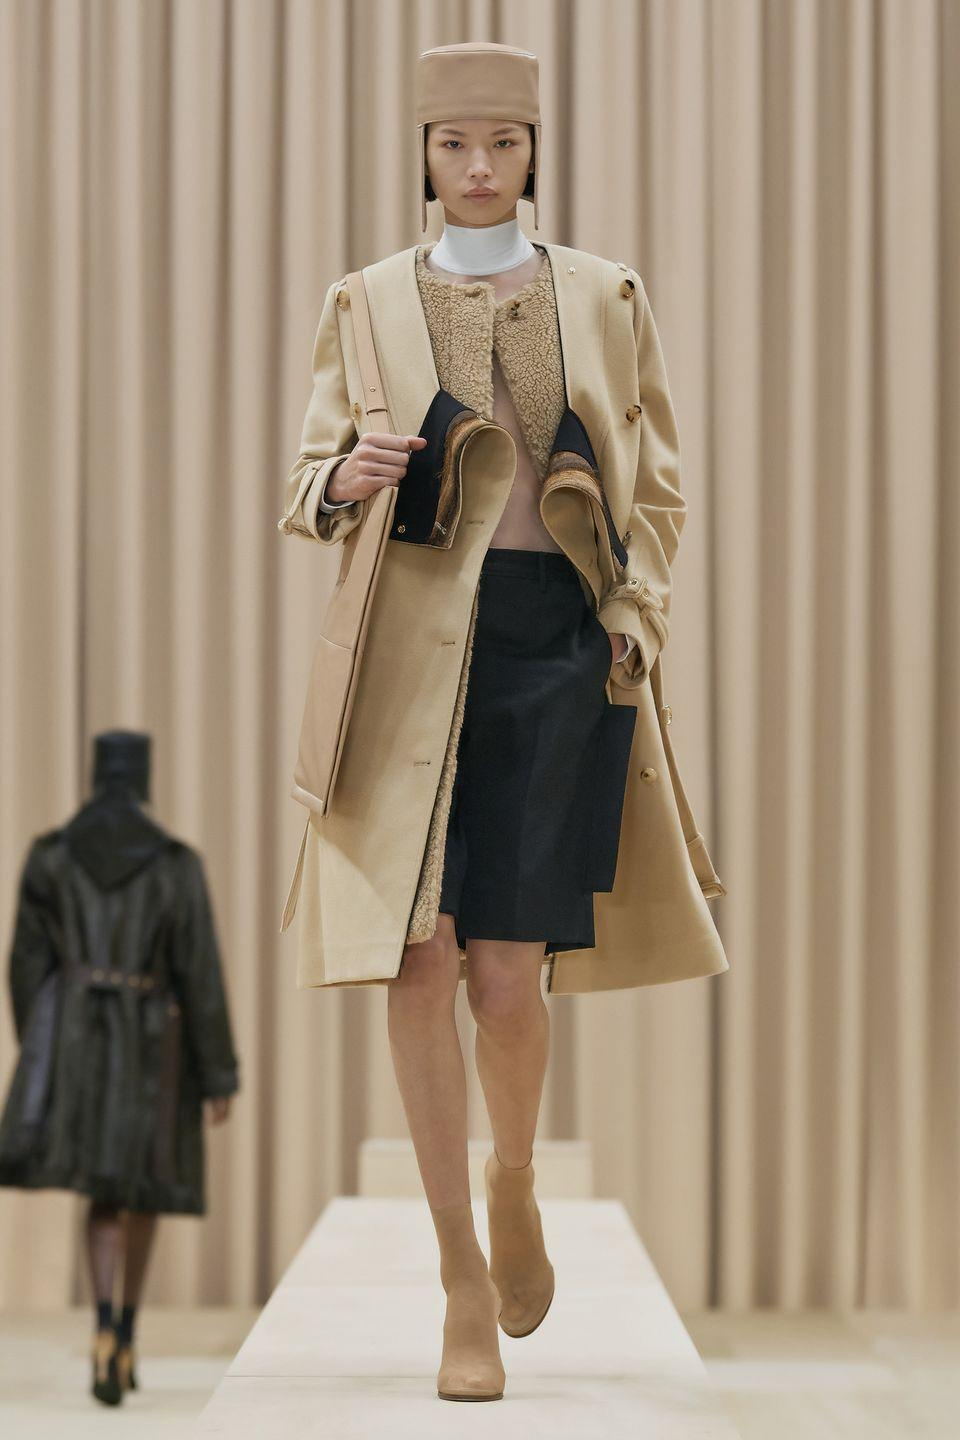 """<p>Burberry Chief Creative Officer Ricardo Tisci's Fall 2021 collection is an exposition on feminine strength. """"I wanted this collection to feel truly emblematic of the power of feminine energy: a modern armor that captures its characteristic fierce aura,"""" he explained in his show notes. """"There's an underlying attitude to the collection that's very British; of being unique, eccentric and totally authentic in how you express yourself.""""</p><p>In Tisci's accomplished hands armor doesn't have to mean something stiff and structured. It could be a sharp-shouldered boxy blazer or gleaming gold lamé trench coat, just as easily as it could a fluttering cape-sleeve dress in color block and animal print or a fluid unlined cape. The majority of these options came paired with quirky sock boots with eye-catching sculptural heels and soles moulded to resemble deer hooves, giving the models a soft, doe-like stride. For Tisci's modern day Boudicas, armor is anything that gives you the confidence to awaken from our extended hibernation and reenter the world of fashion. <em>—Alison S. Cohn<br></em><br><br><br></p>"""